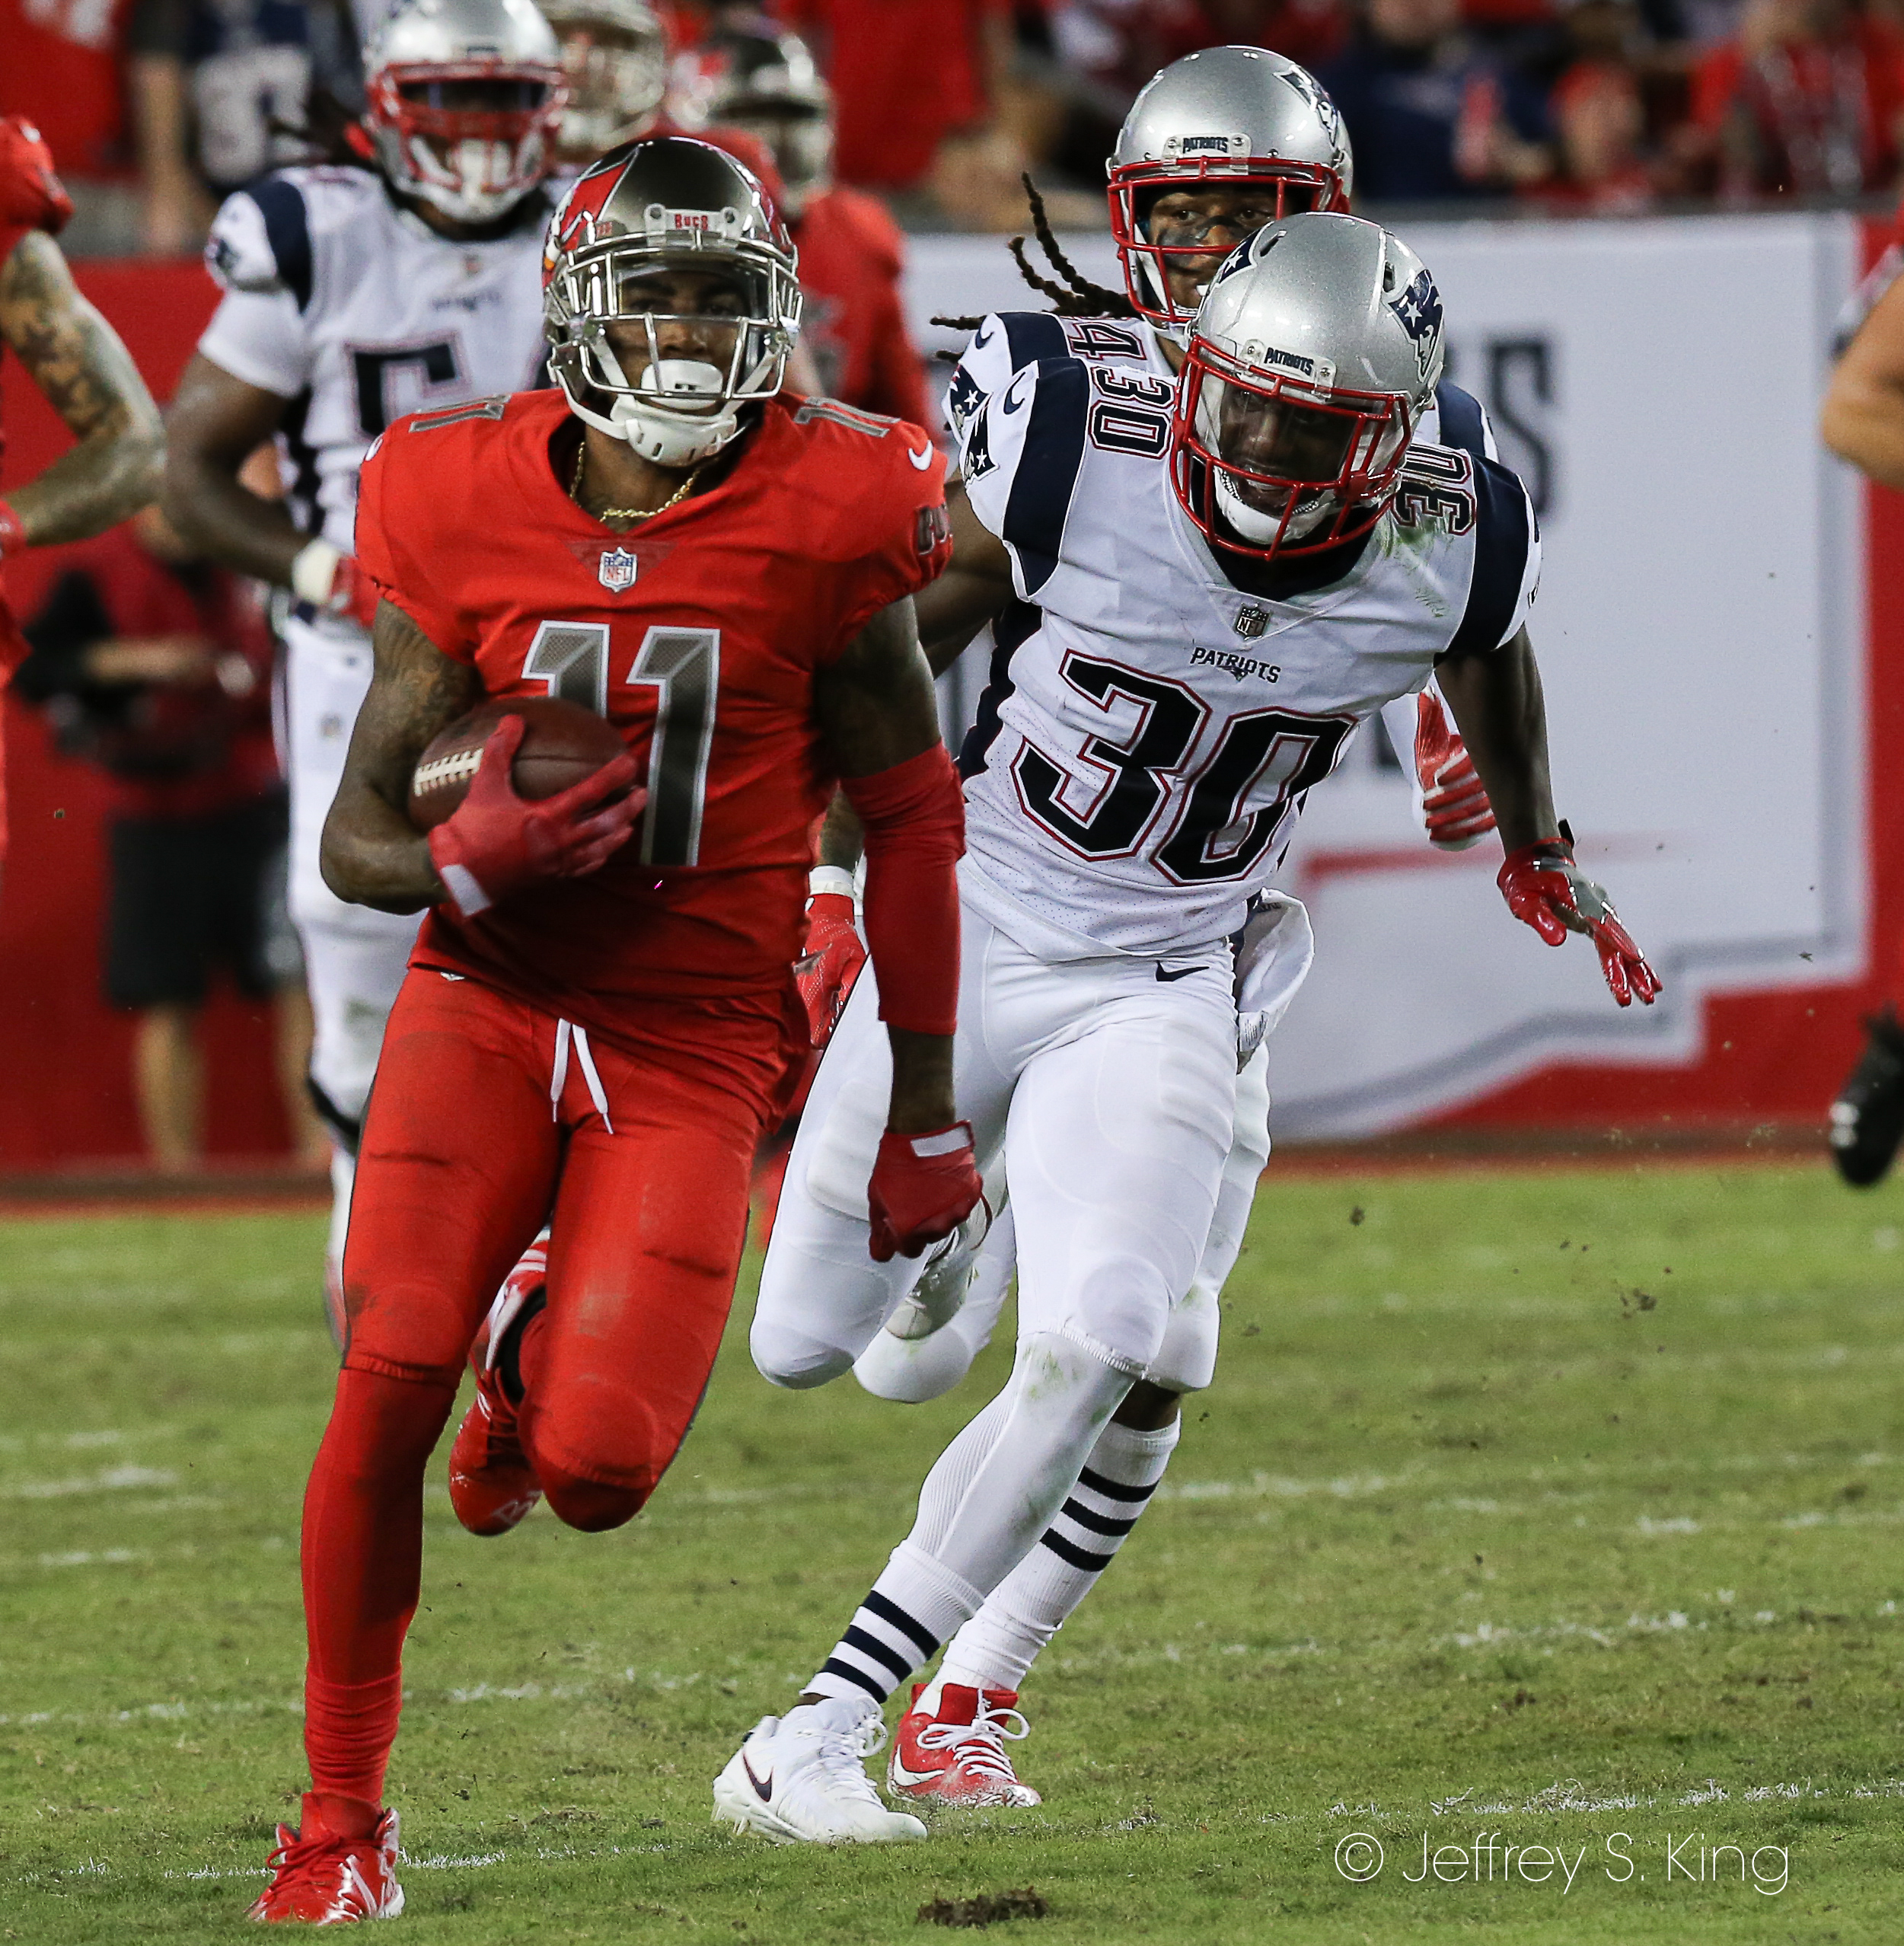 Jackson caught five passes for 106 yards./JEFFREY S. KING